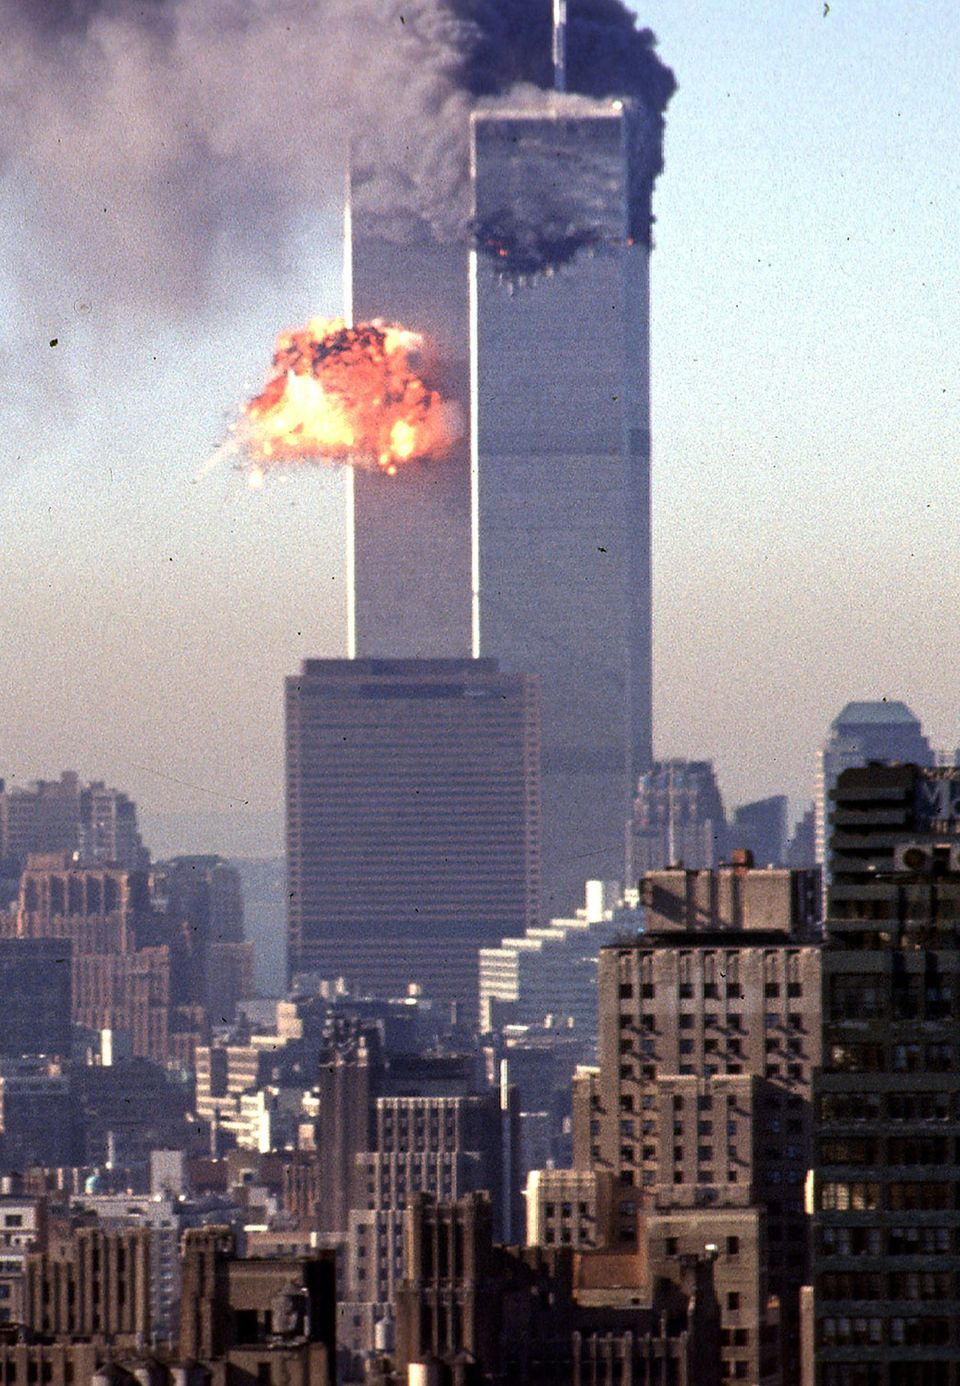 A hijacked commercial plane crashes into the World Trade Centre on September 11, 2001, in New